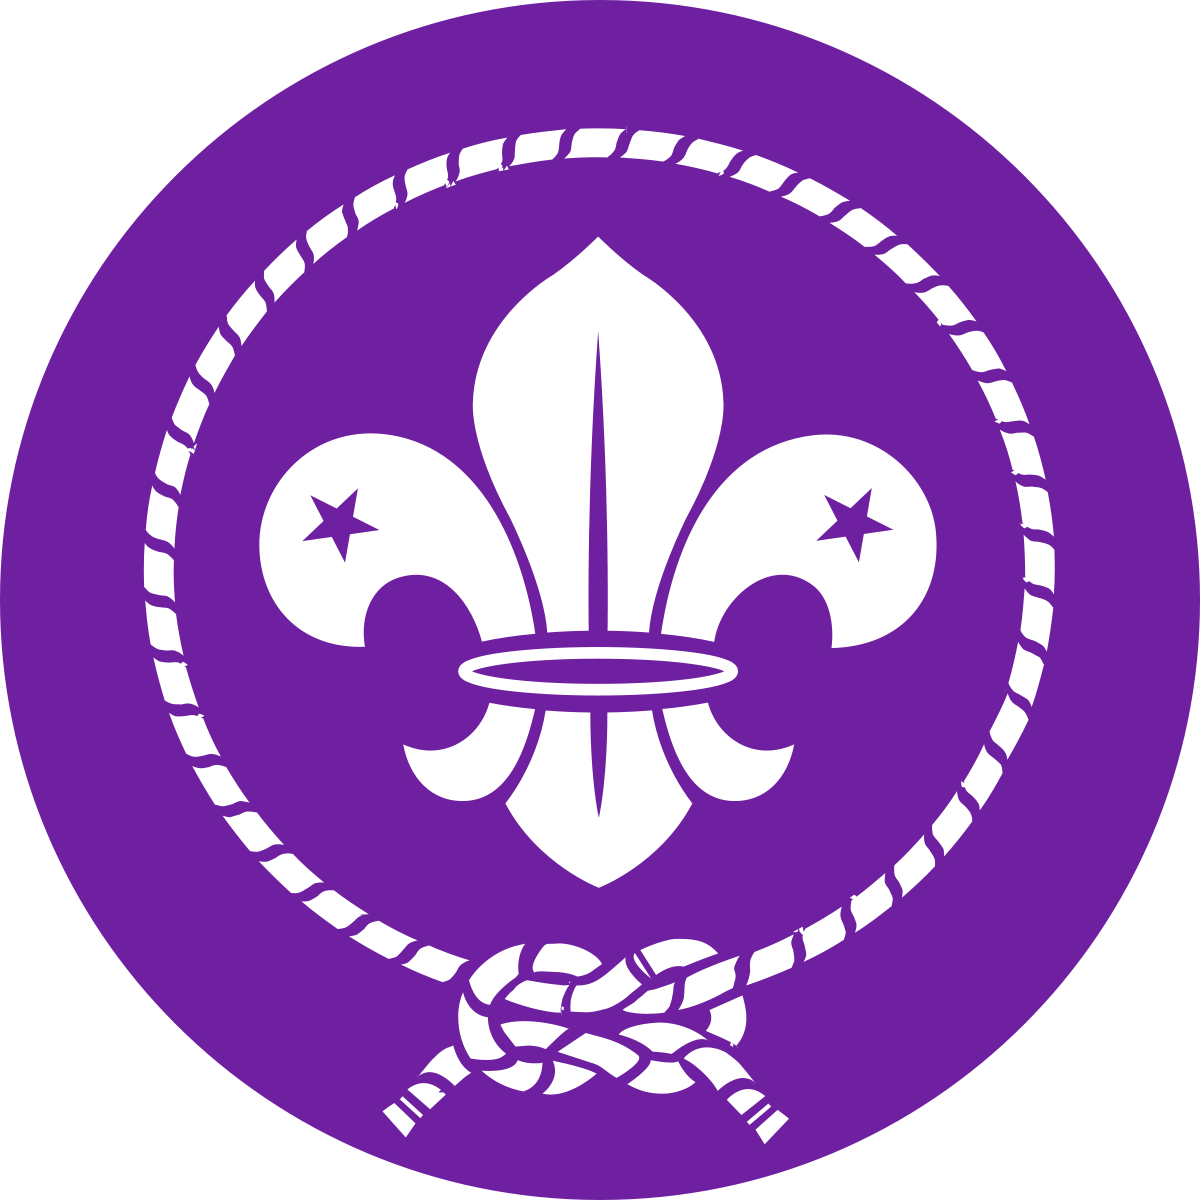 clipart royalty free World scout emblem wikipedia. Vector crest rope